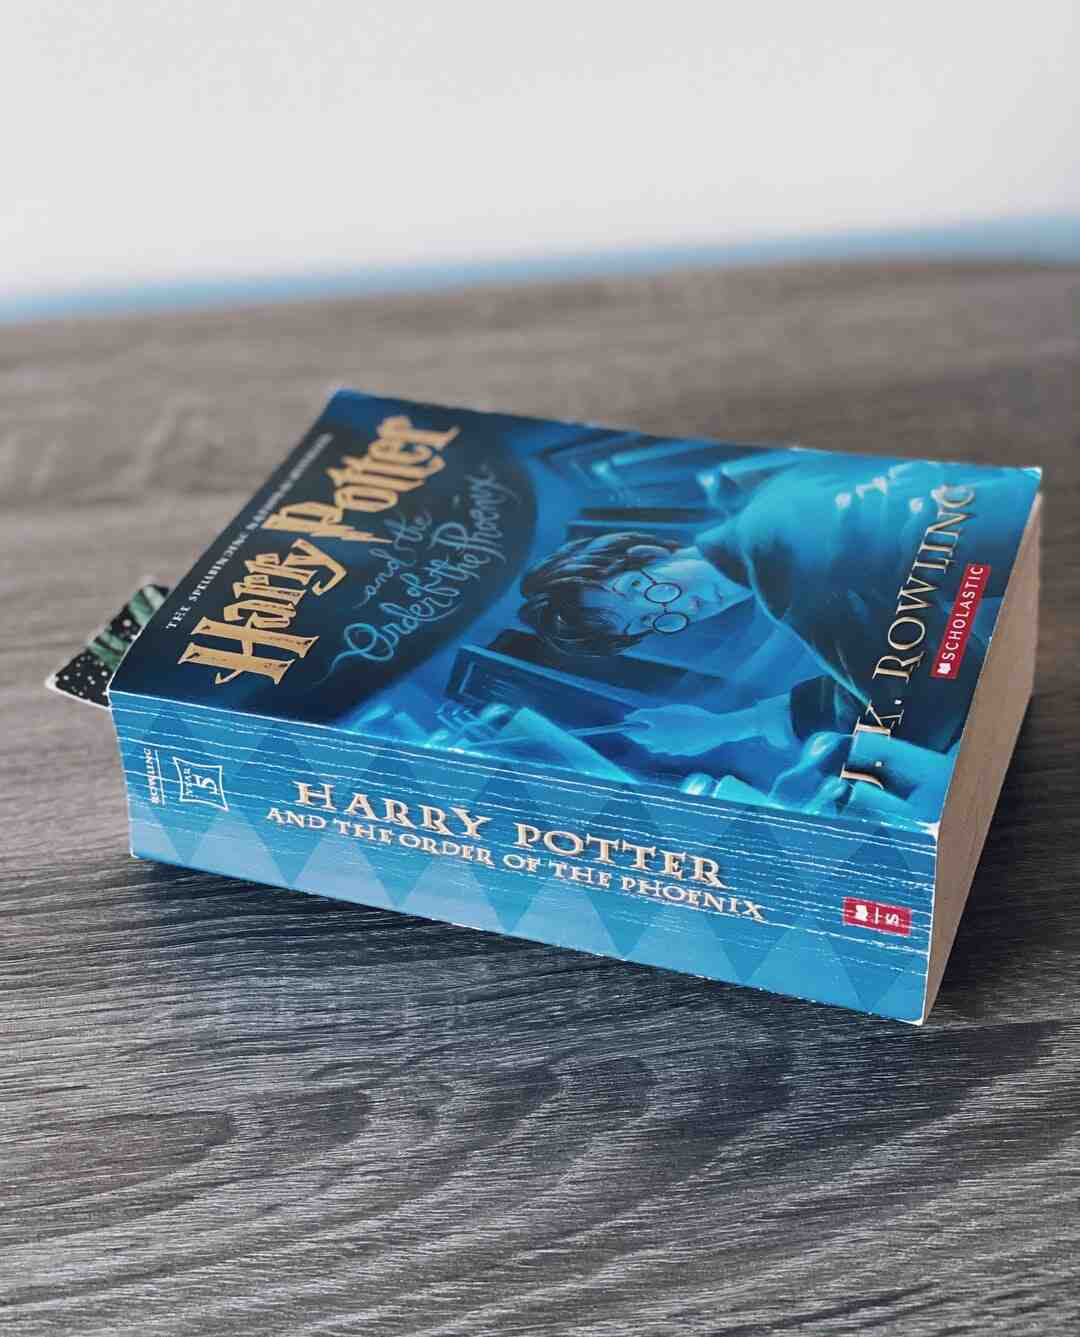 How many books of harry potter are there